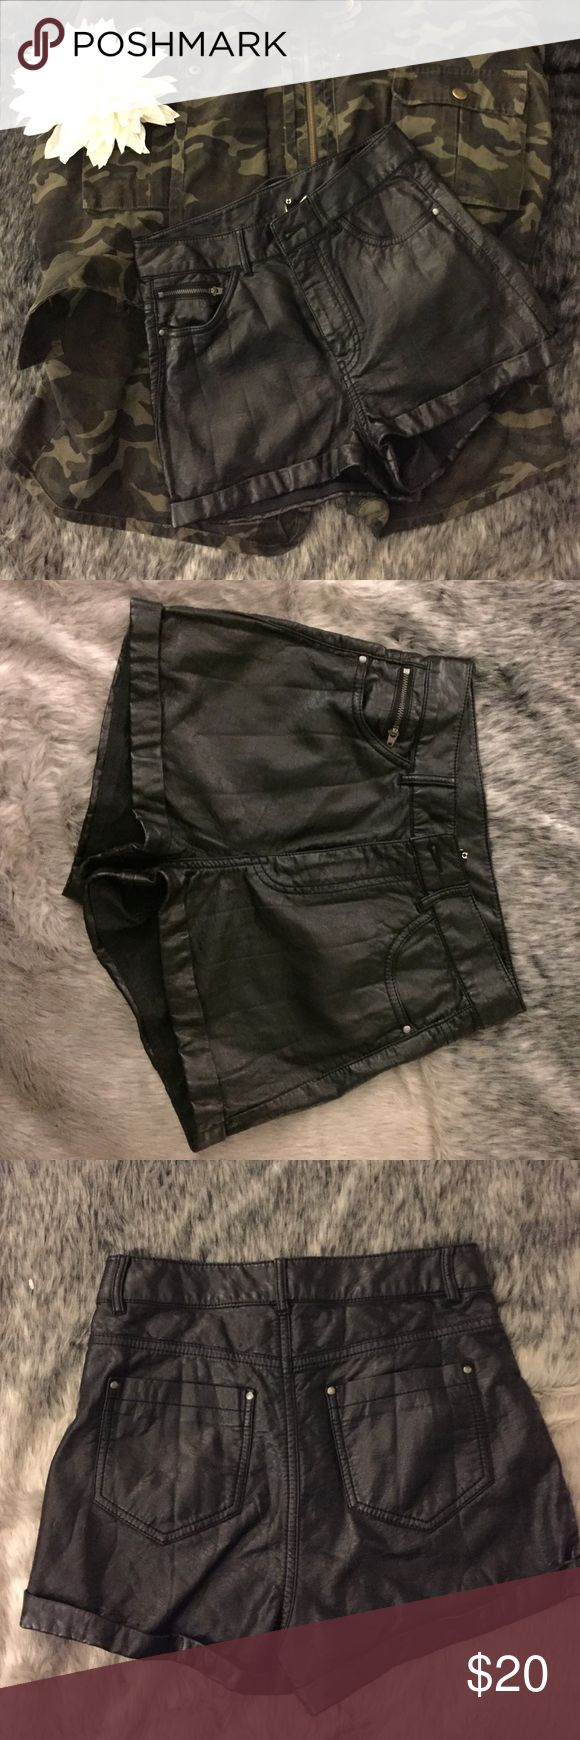 H&M vegan leather shorts Black vegan leather shorts. Pair with tights booties and a flannel for a fun edgy fall look! Shorts are mid rise and will hit just at or below the belly button H&M Shorts